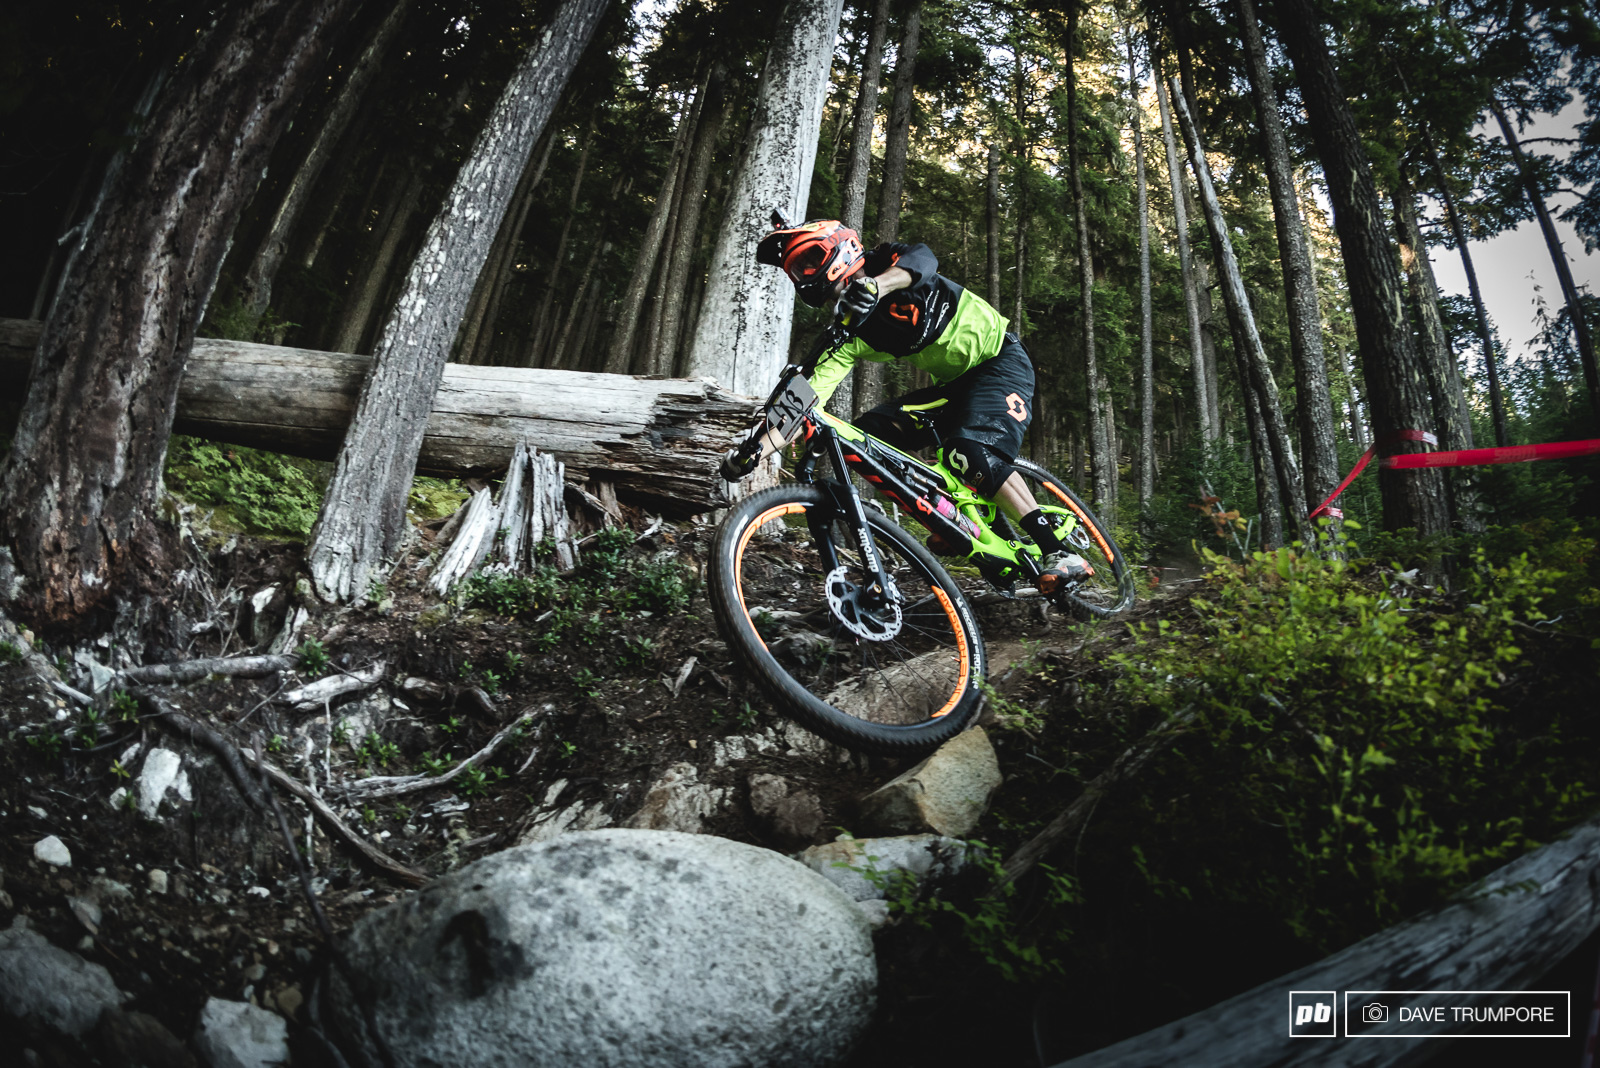 Remy Absalon had his best finish in quite some time at the last round creeping back into the top 10. The long physical stages in Whistler should suit the fit Frenchman so he is certainly one to keep an eye on.